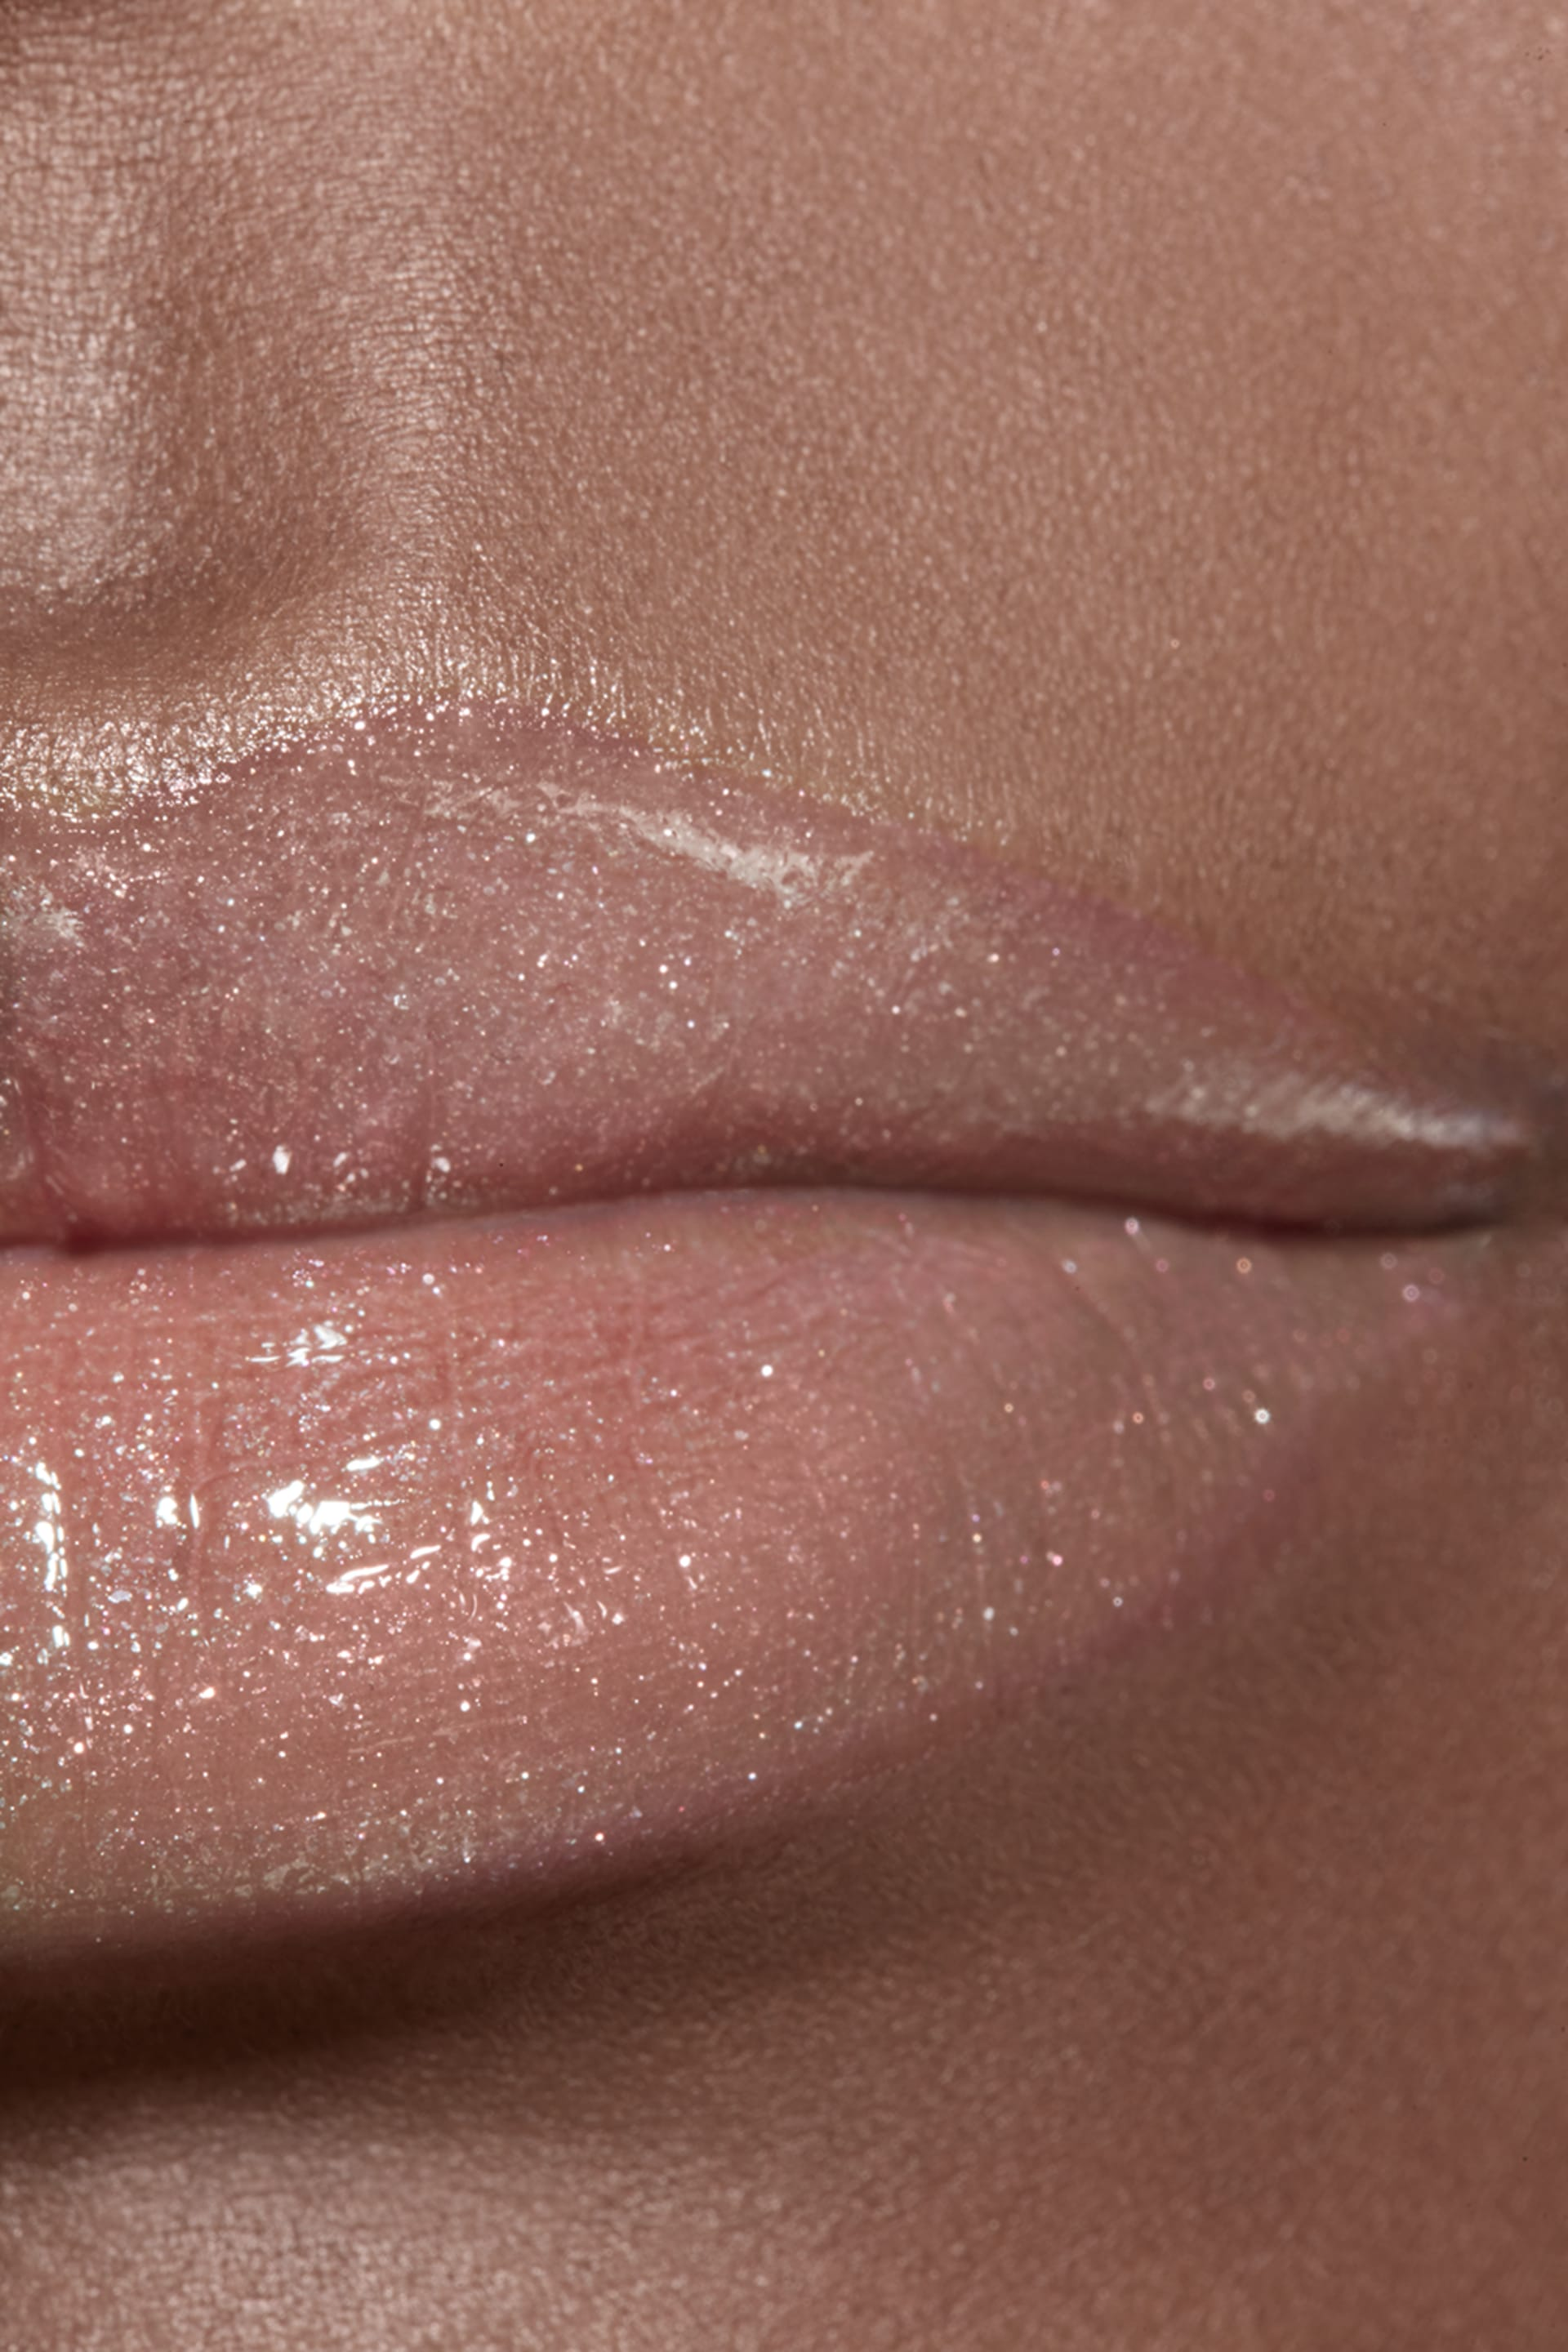 Visuel d'application maquillage 2 - ROUGE COCO GLOSS 712 - MELTED HONEY